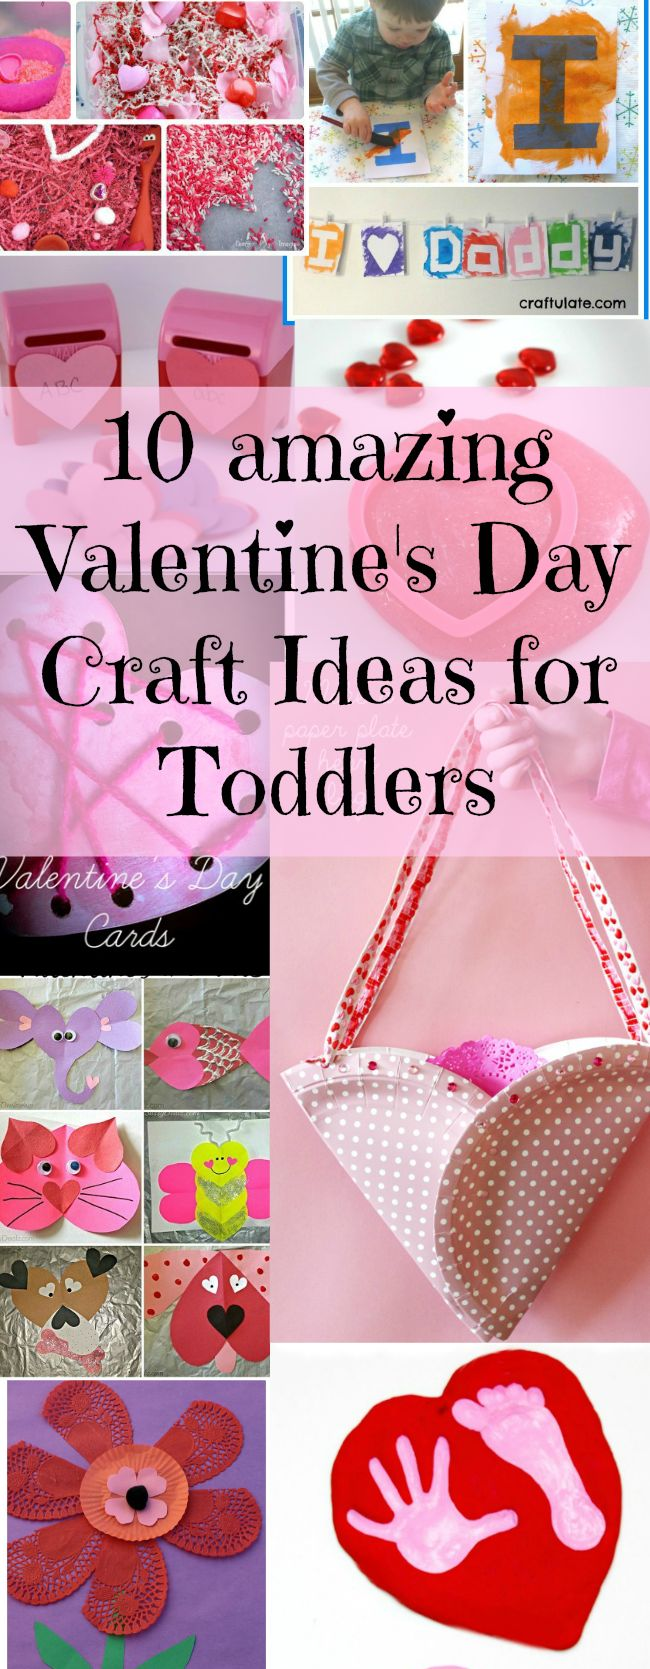 Toddler valentine craft ideas - 1000 Ideas About Valentine Crafts For Toddlers On Pinterest